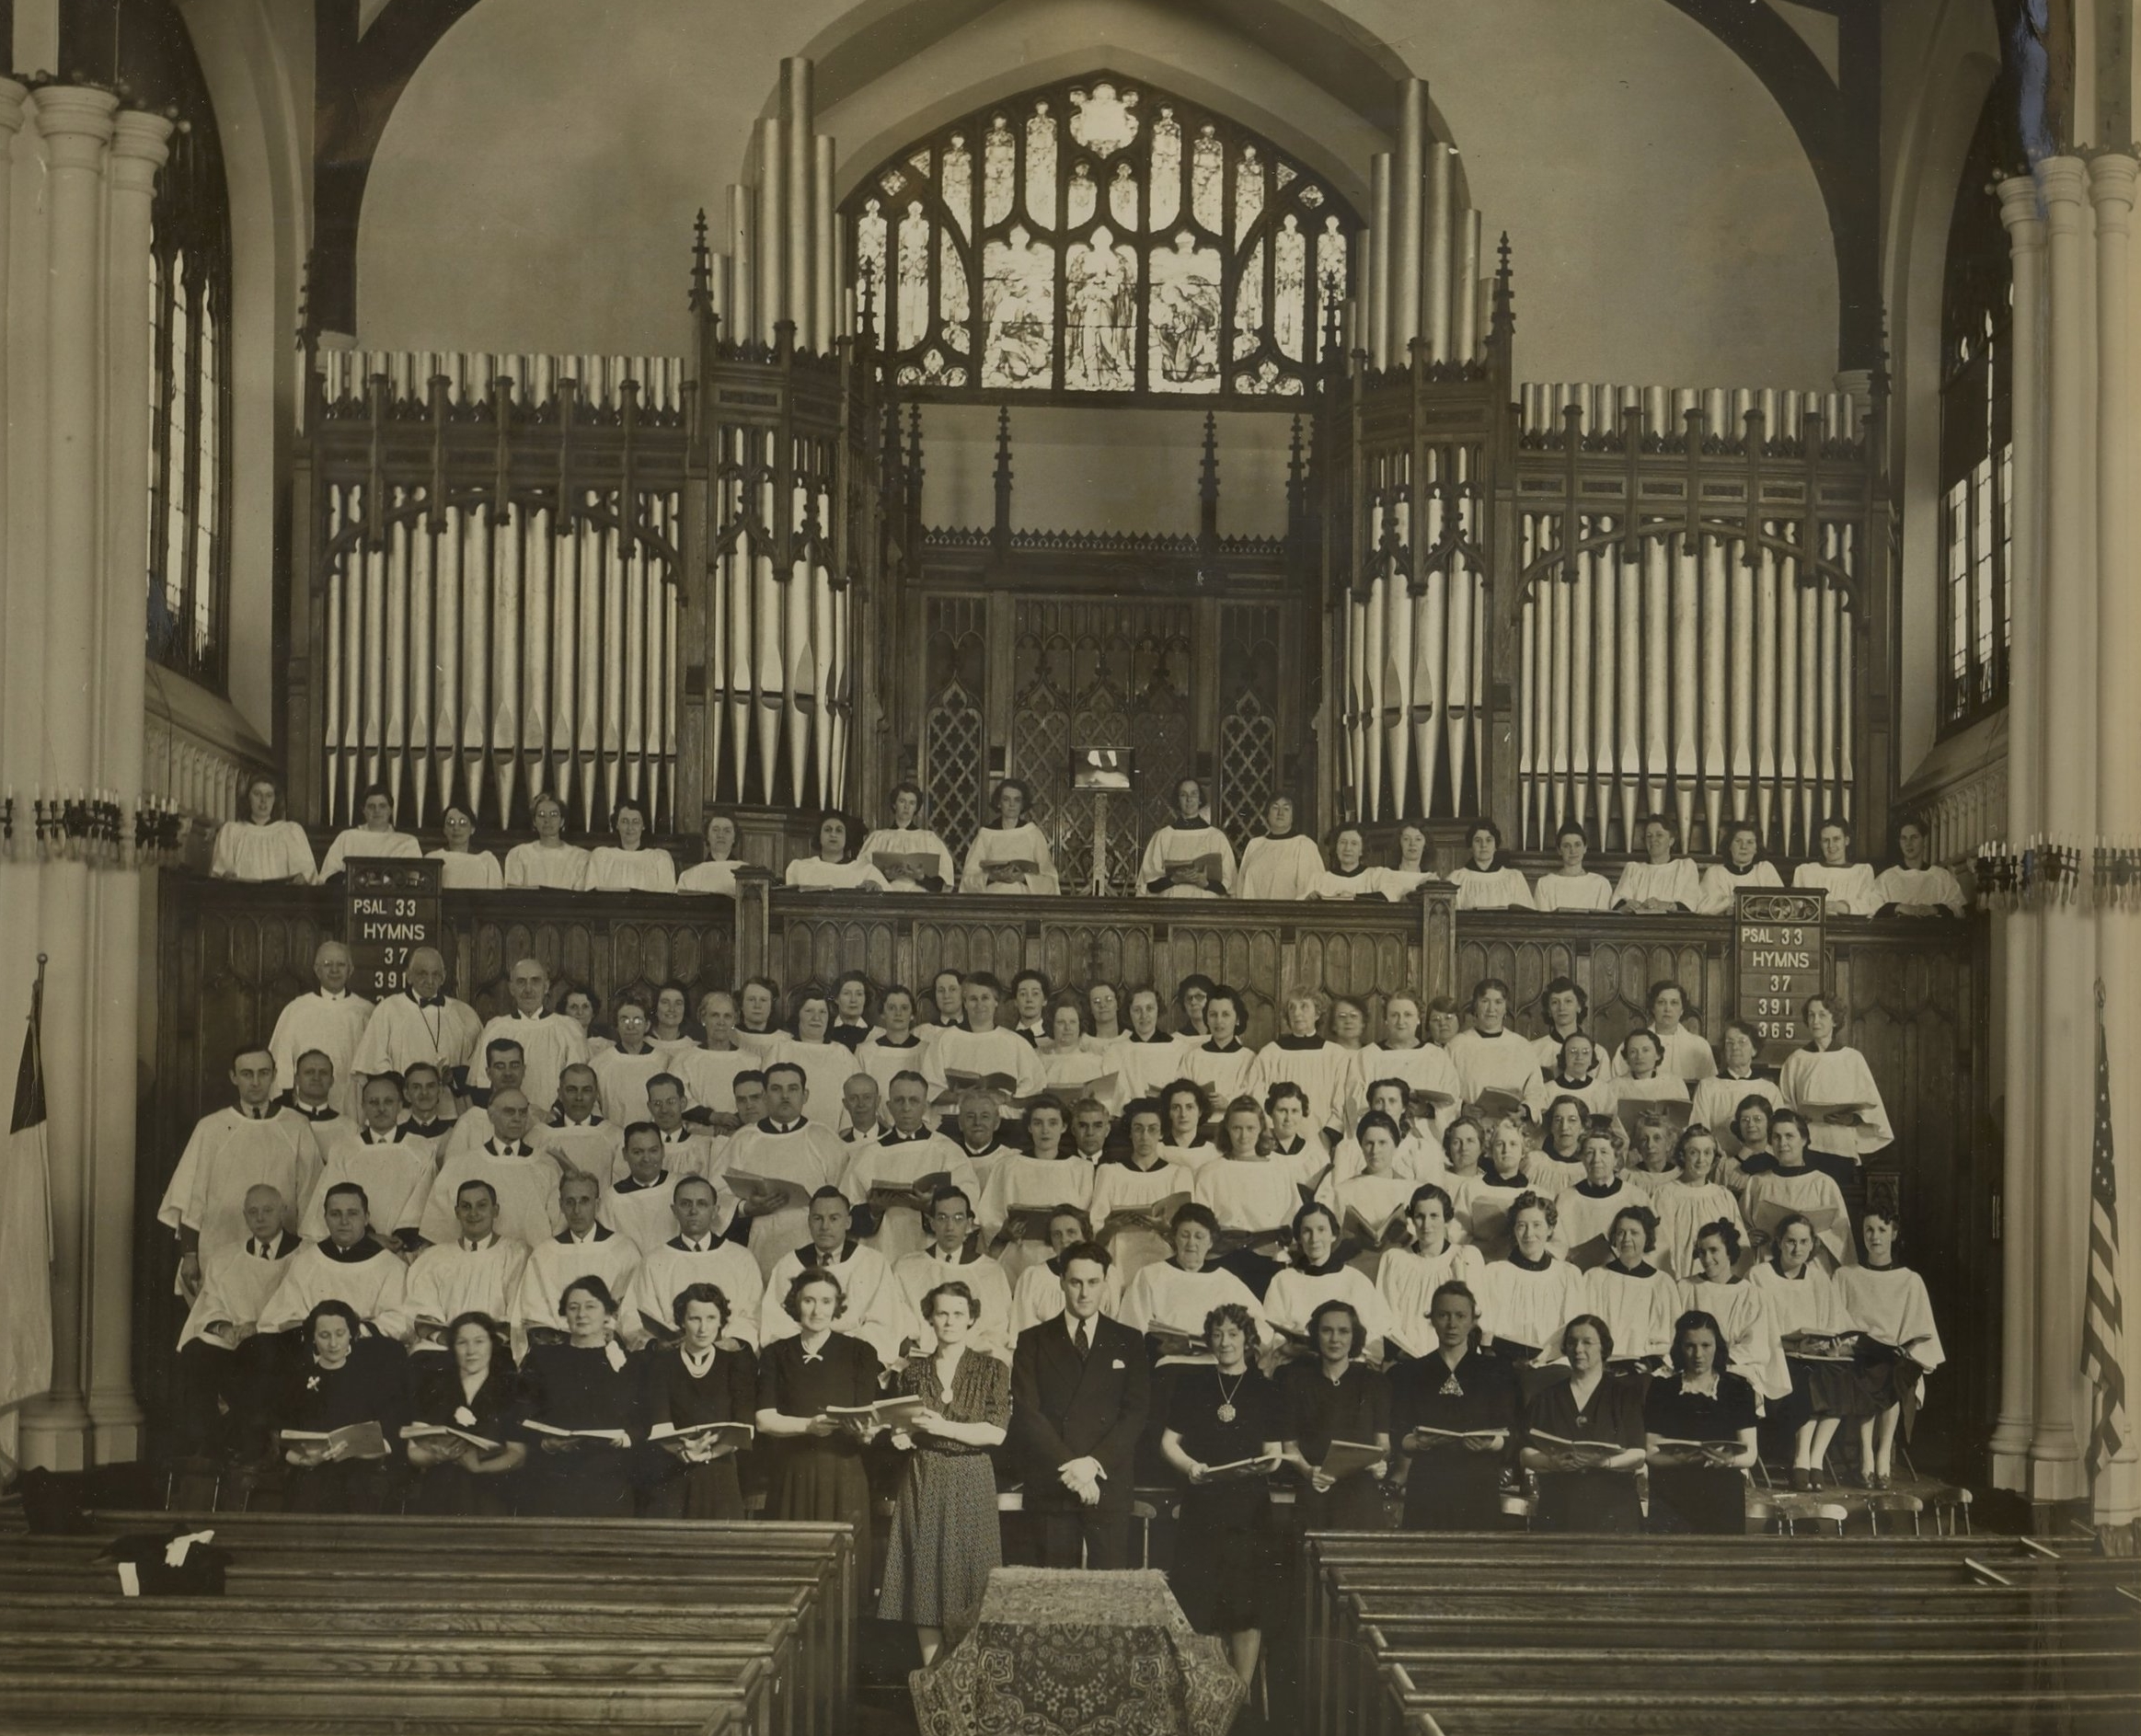 flushing-oratorio-society-with-the-guild-choral.jpg